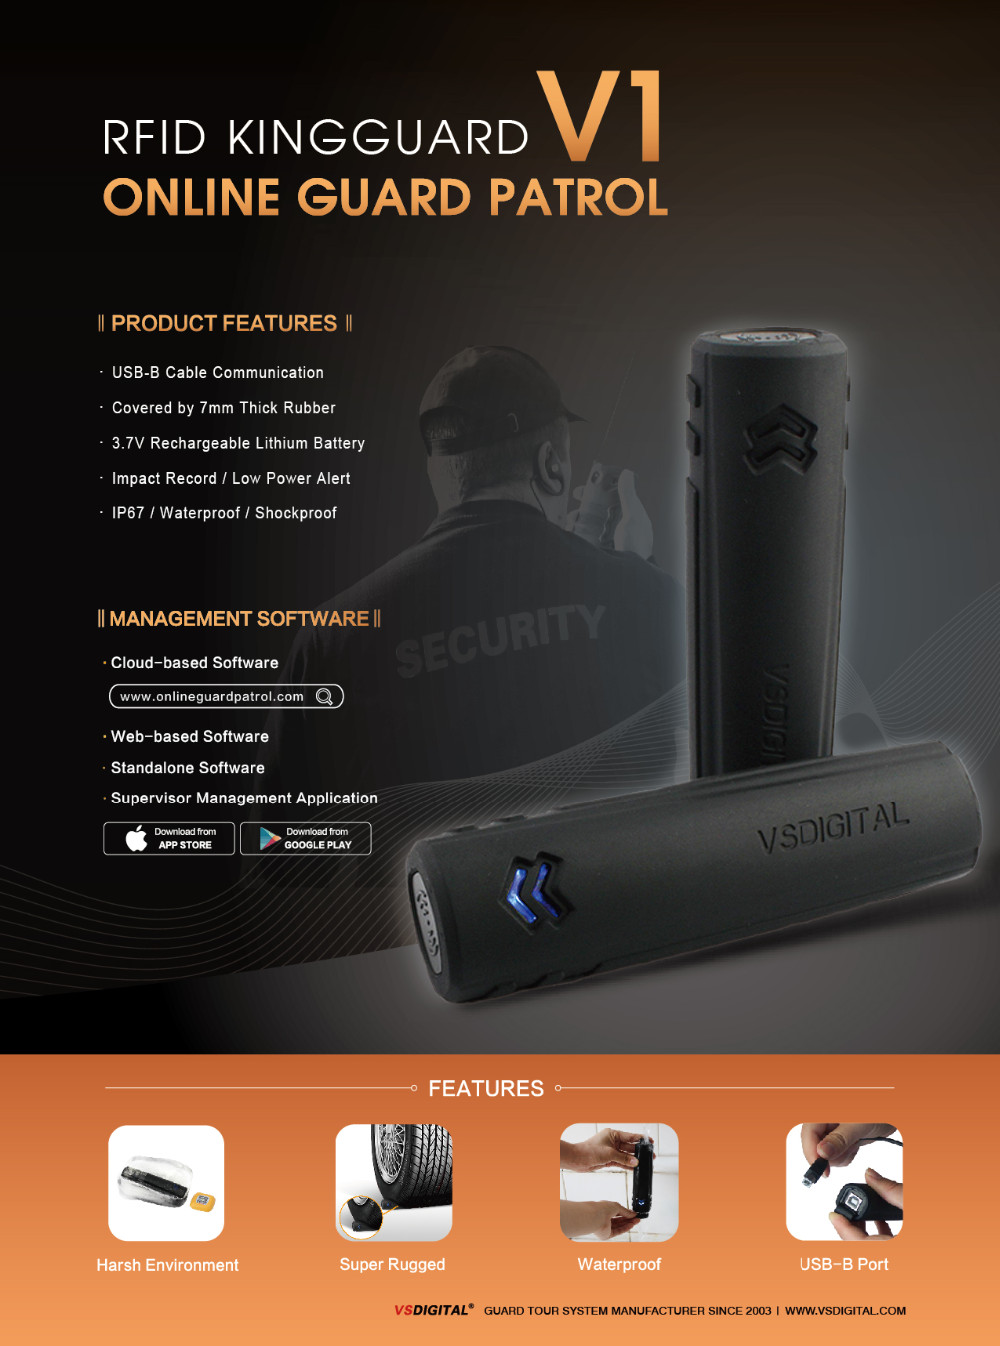 RFID IP68 Guard Tour Patrol System with APP Management and Could-based Software